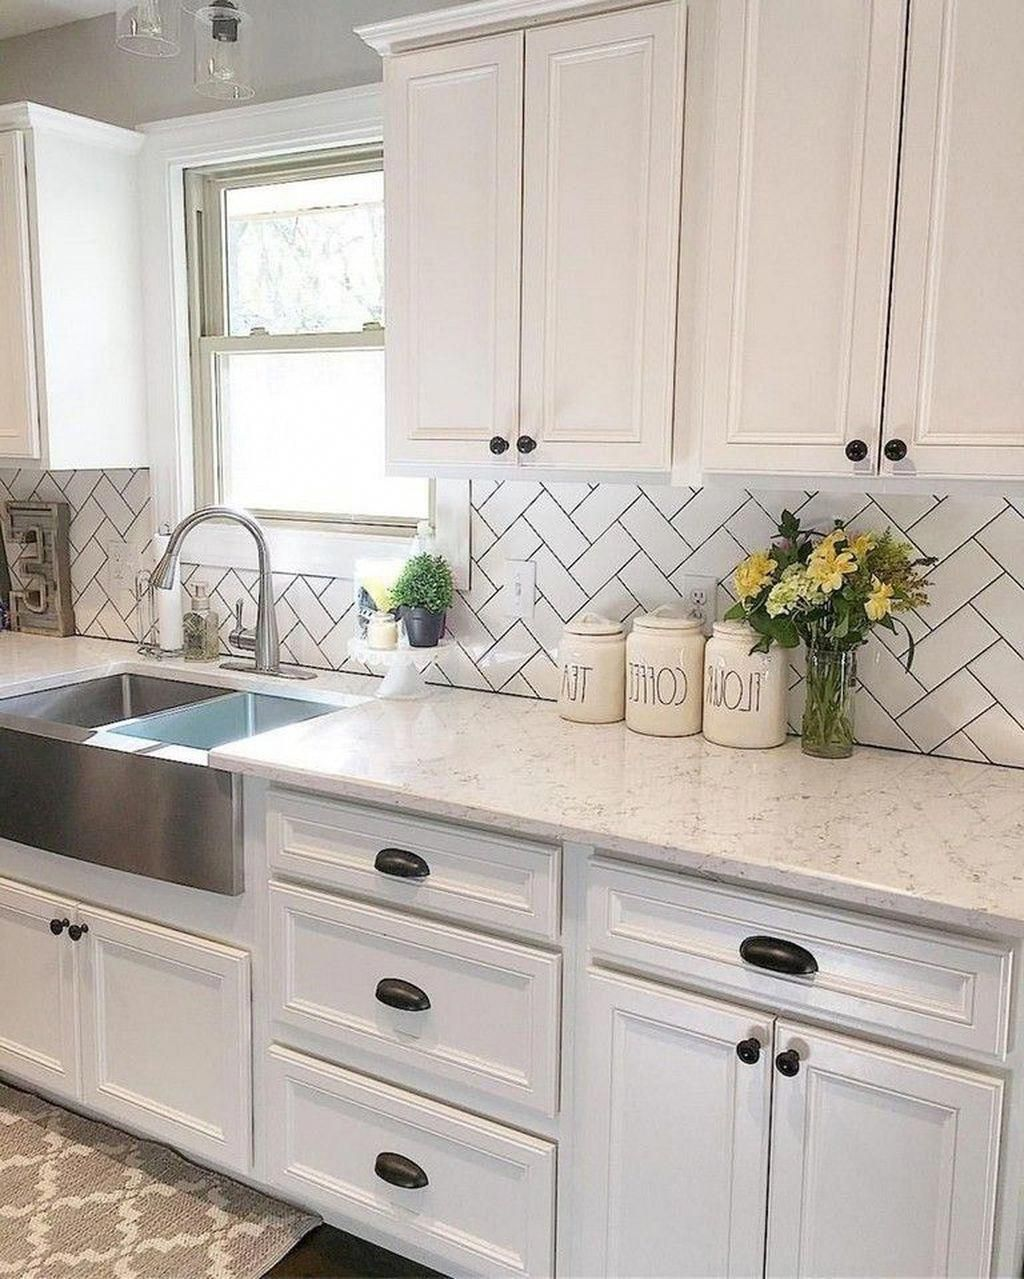 Whether You Are Designing A New Kitchen Or Remodeling An Old One You Will Need To Begin Kitchen Sink Decor Kitchen Decor Inspiration Kitchen Remodel Small